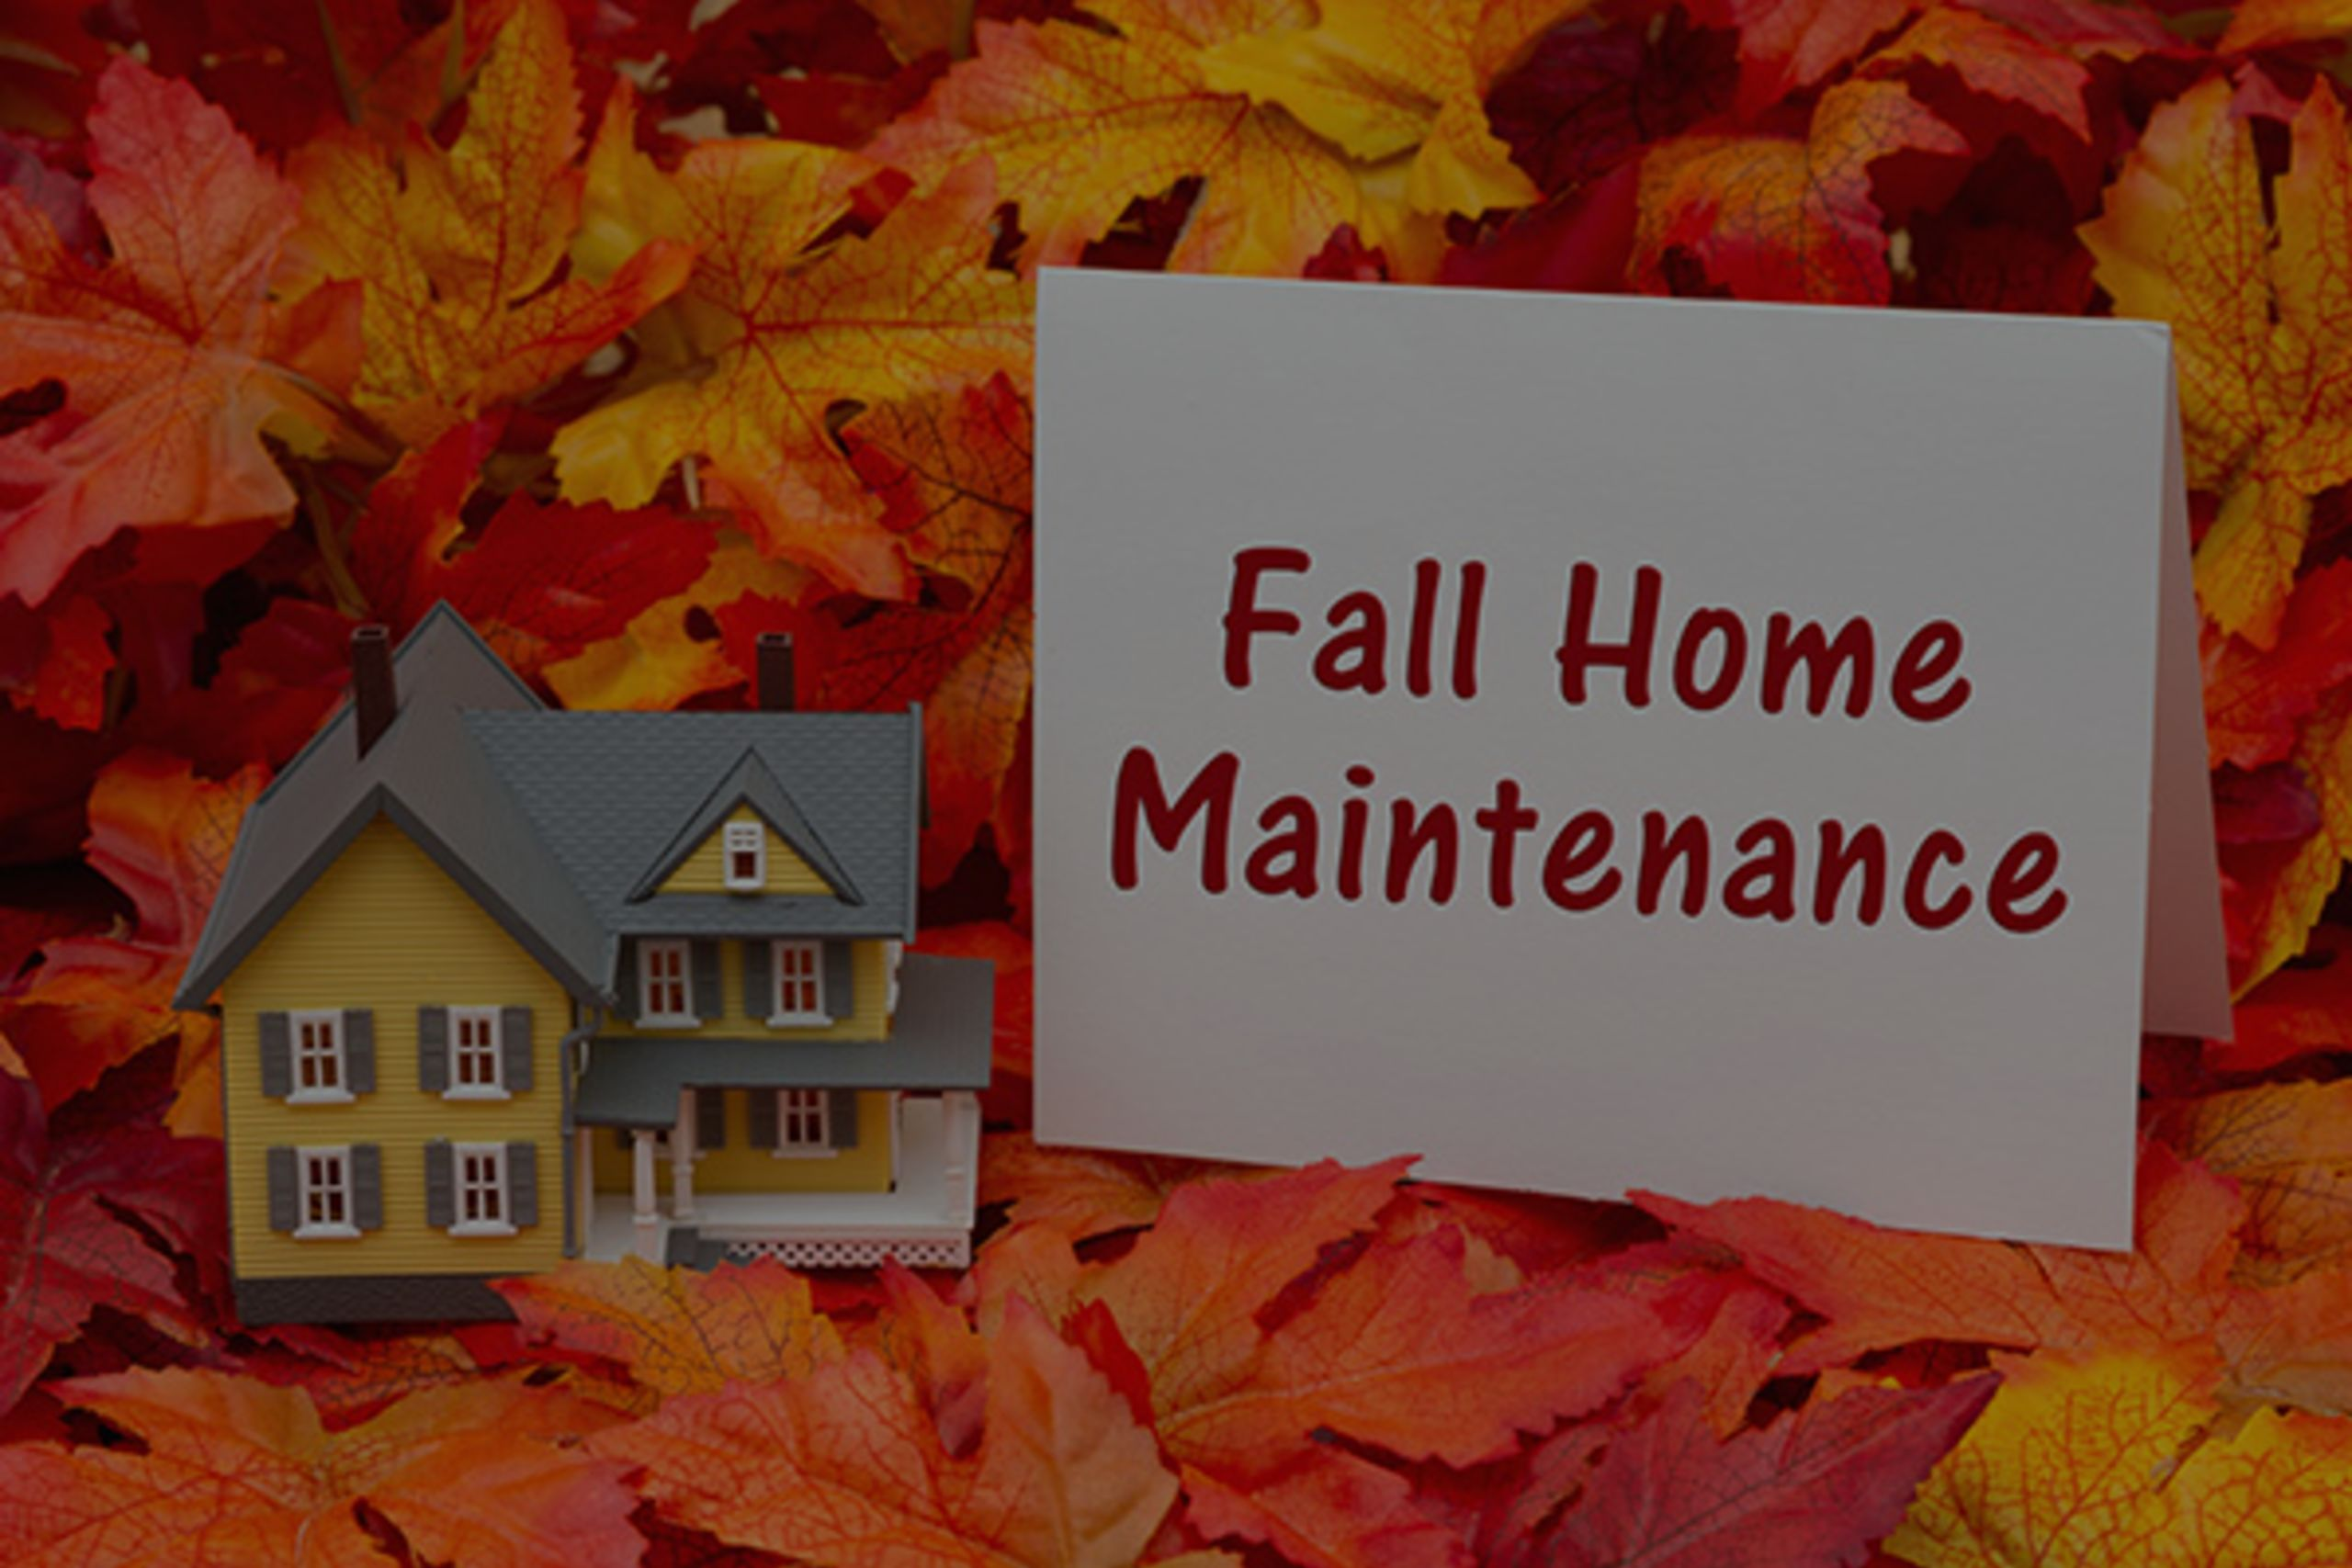 5 Easy Fall Home Maintenance Tips